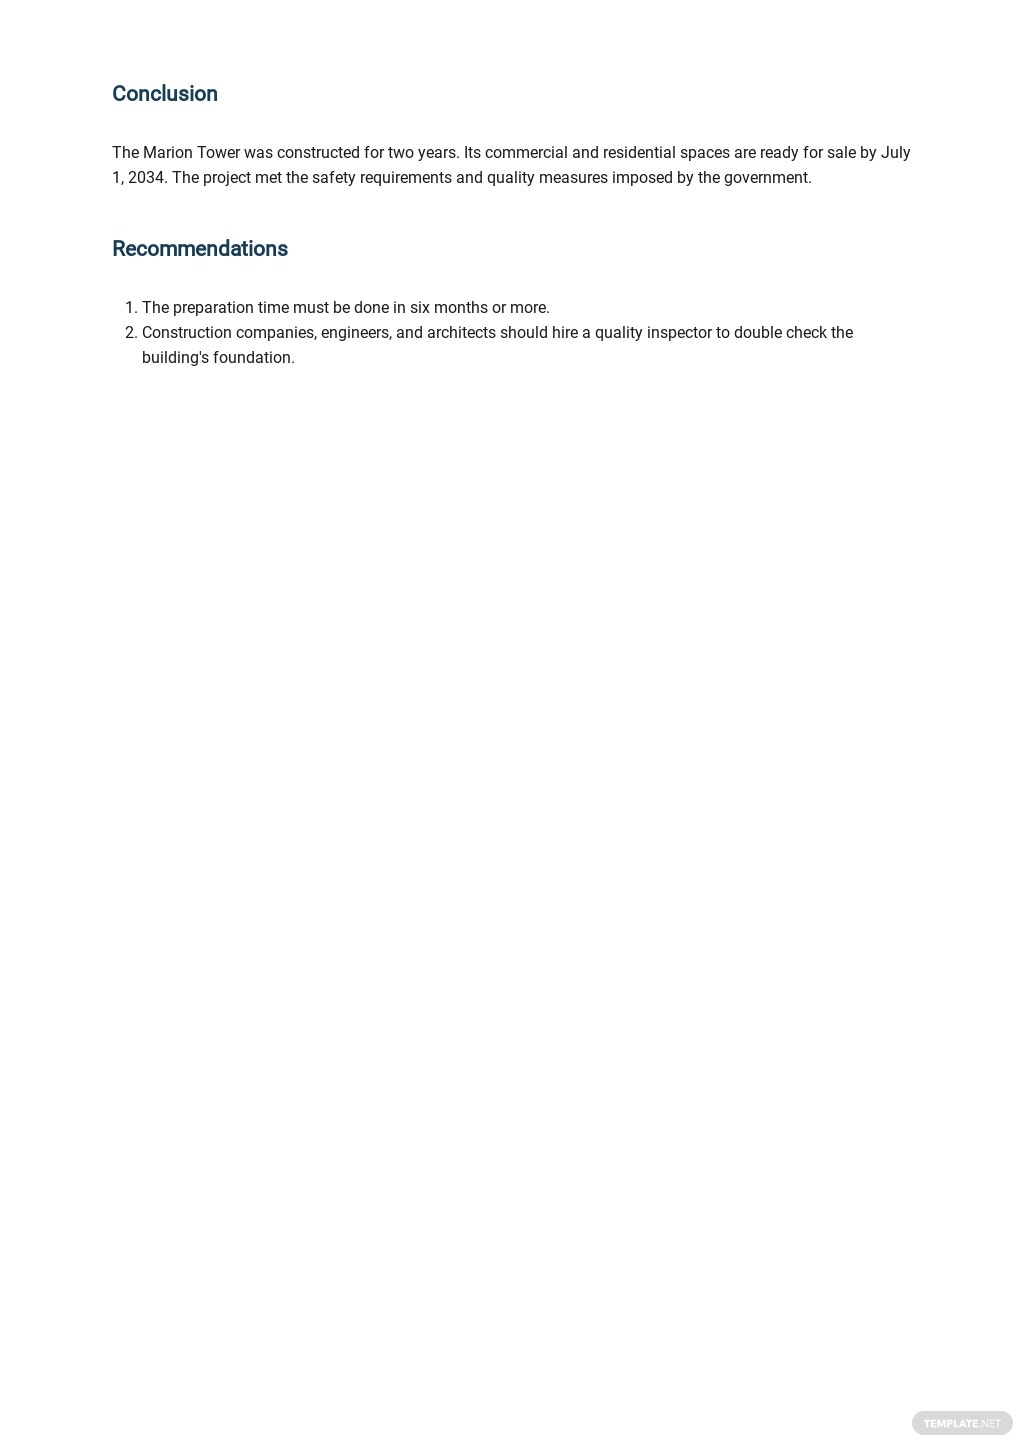 Real Estate Project Report Template 4.jpe